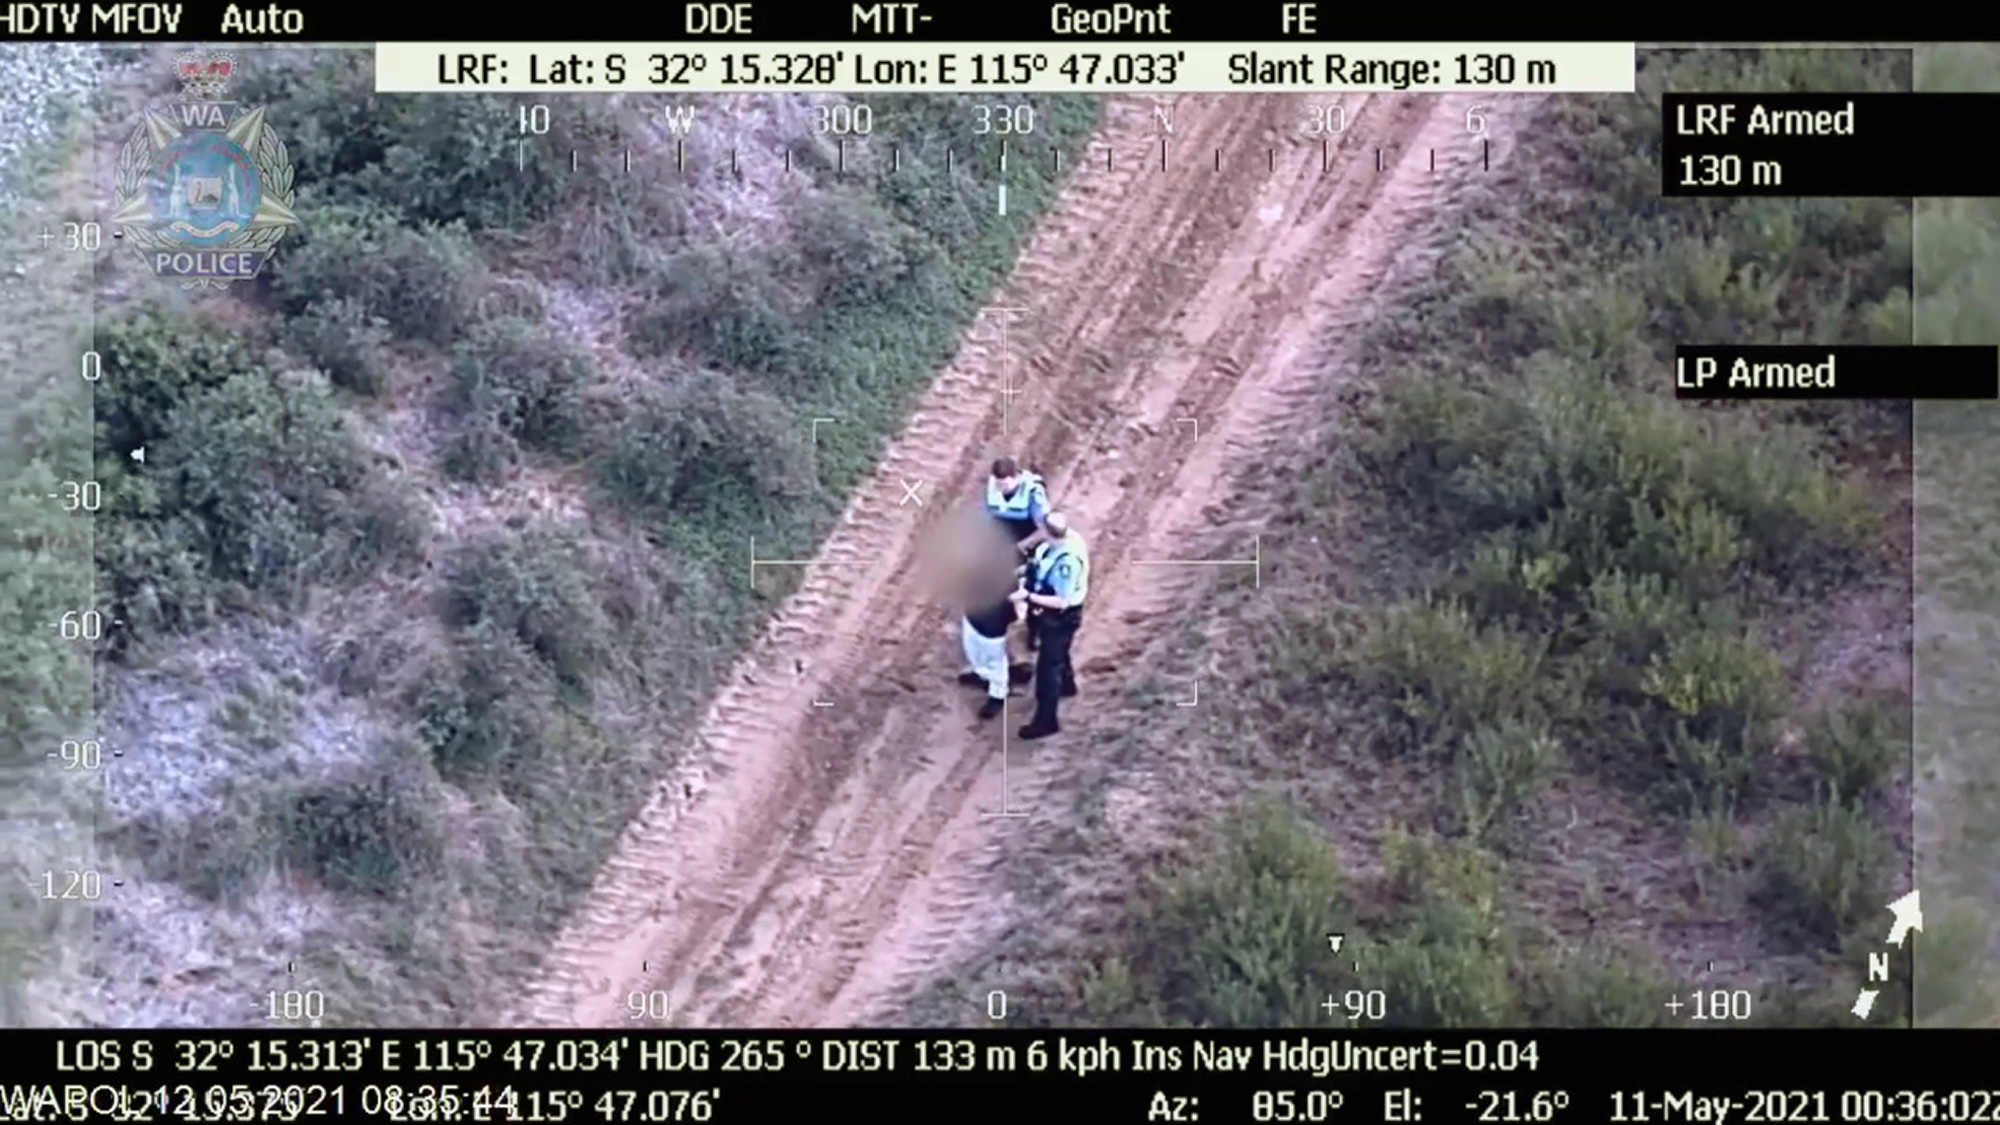 VIDEO: Well High There: Crook Waves At Police Chopper After Long-Distance Car Chase